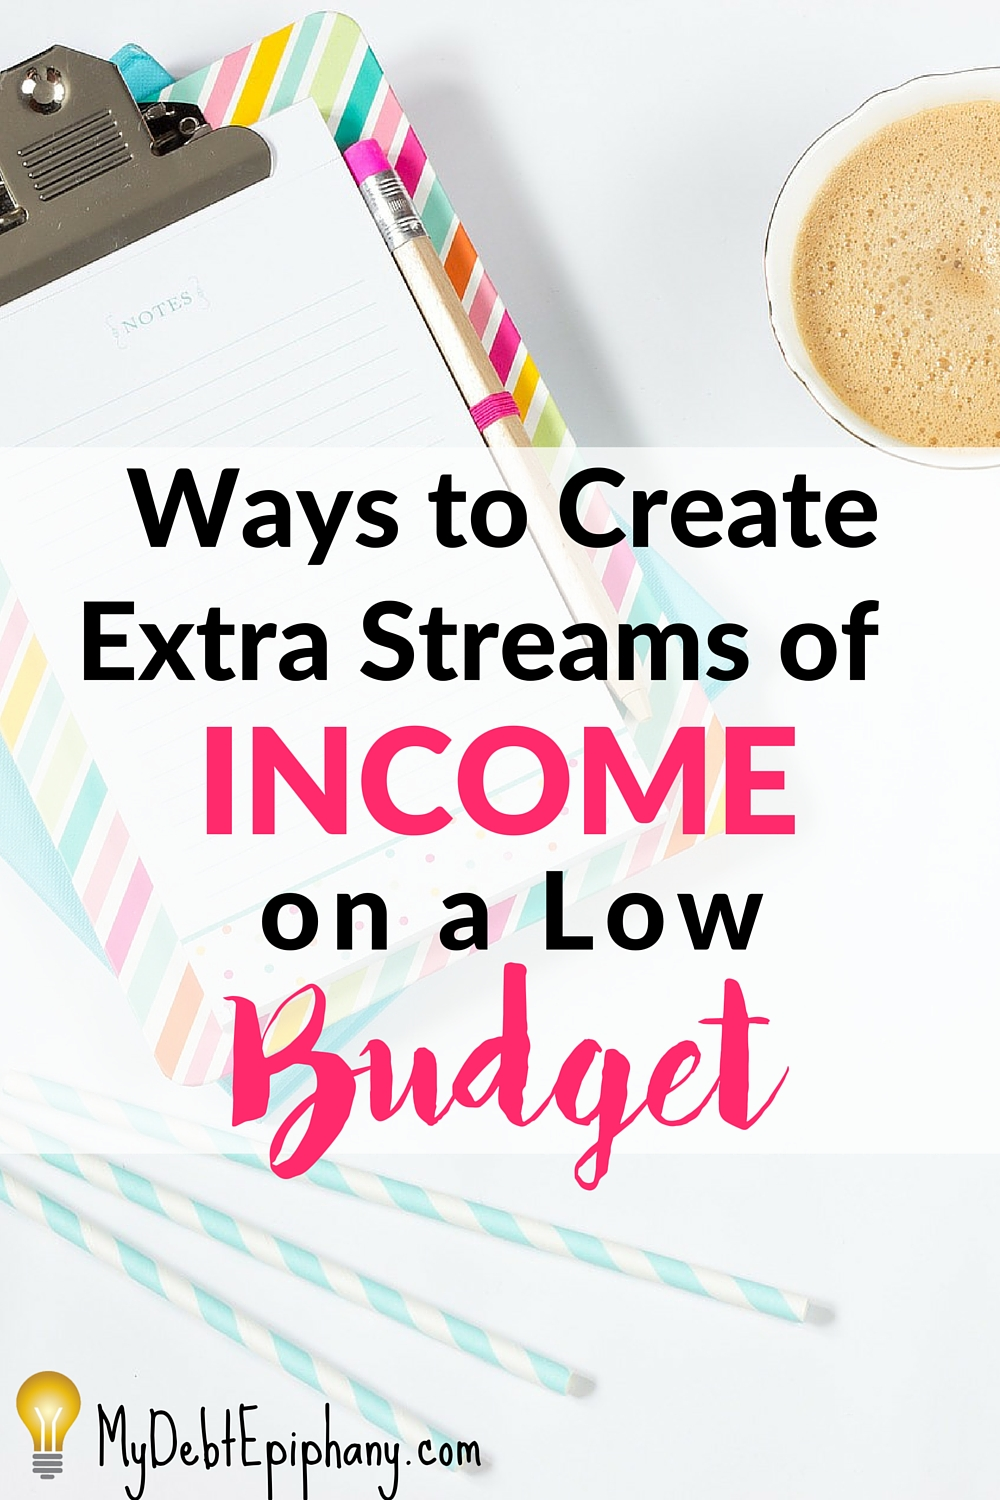 ways-to-create-extra-streams-of-income-on-a-low-budget